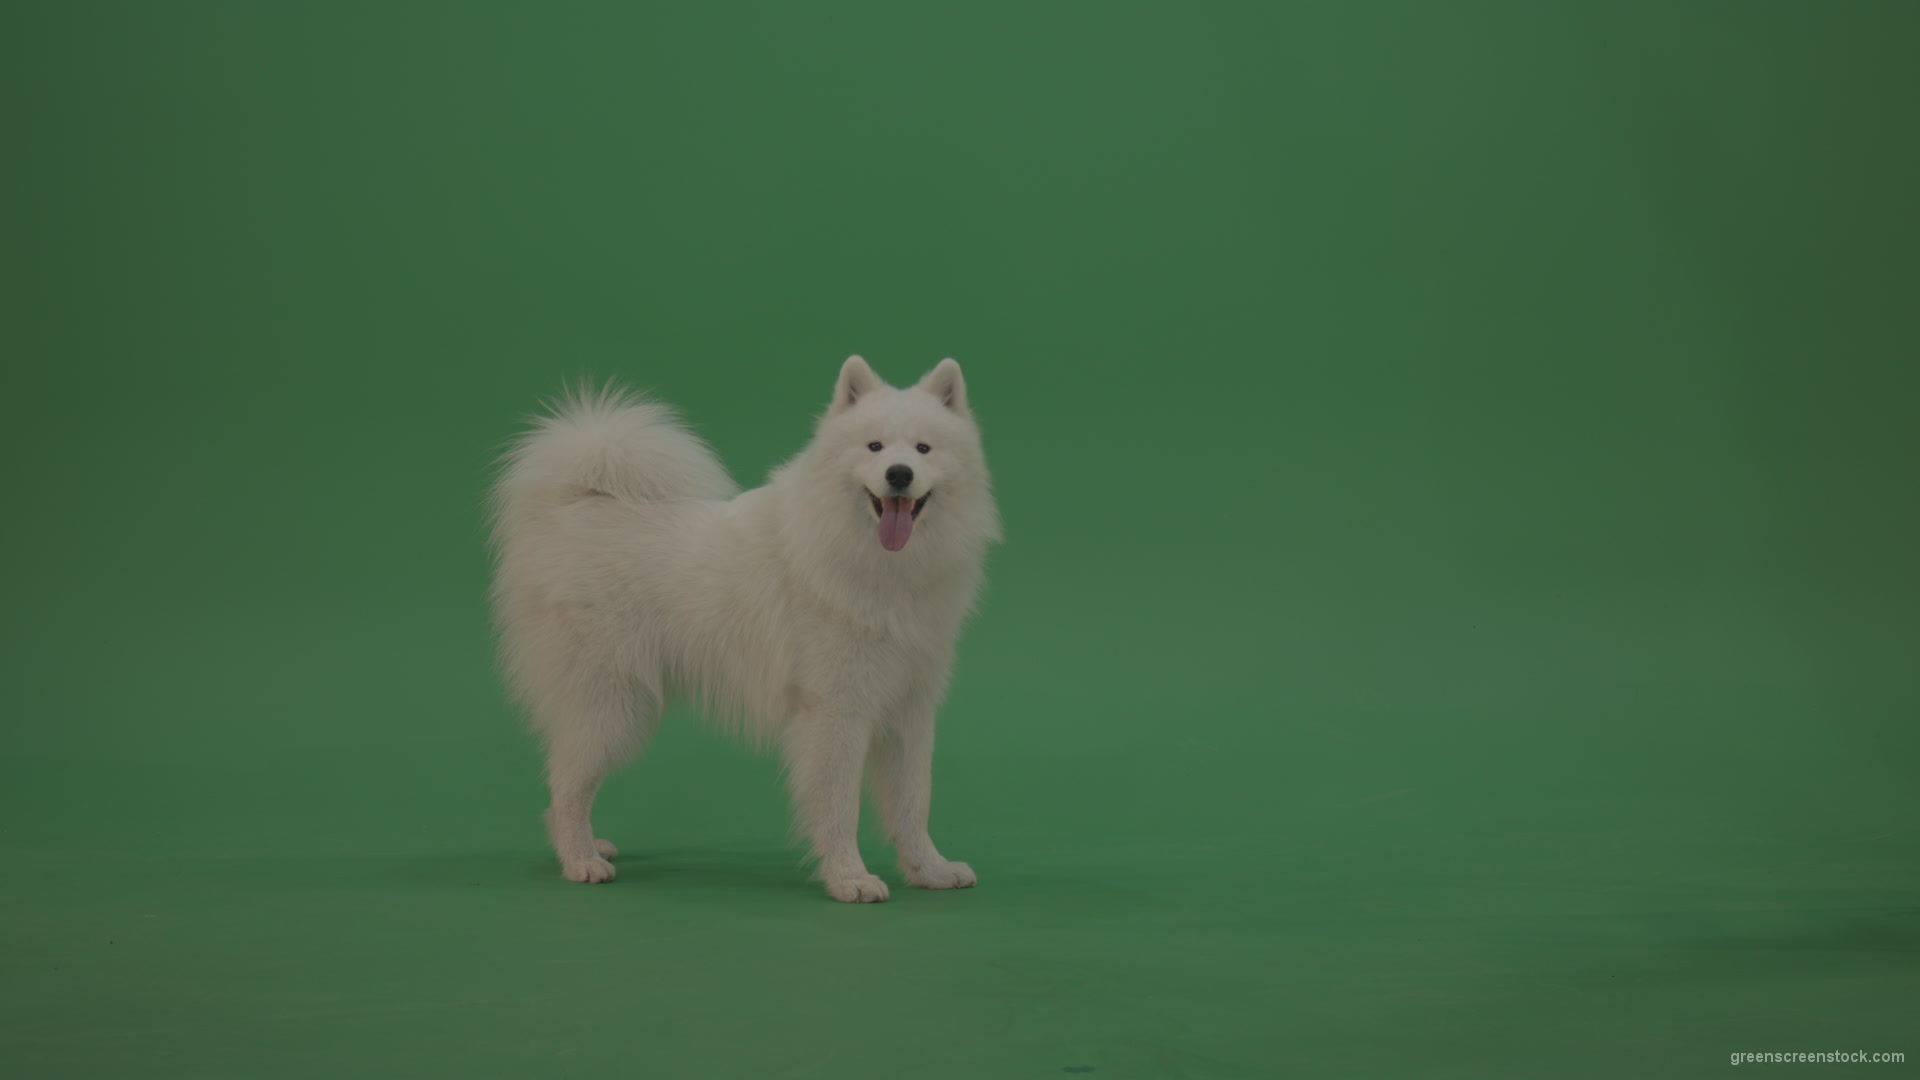 Funny White Samoyed Dog on green background – 4K Green Screen Stock Video  Footage